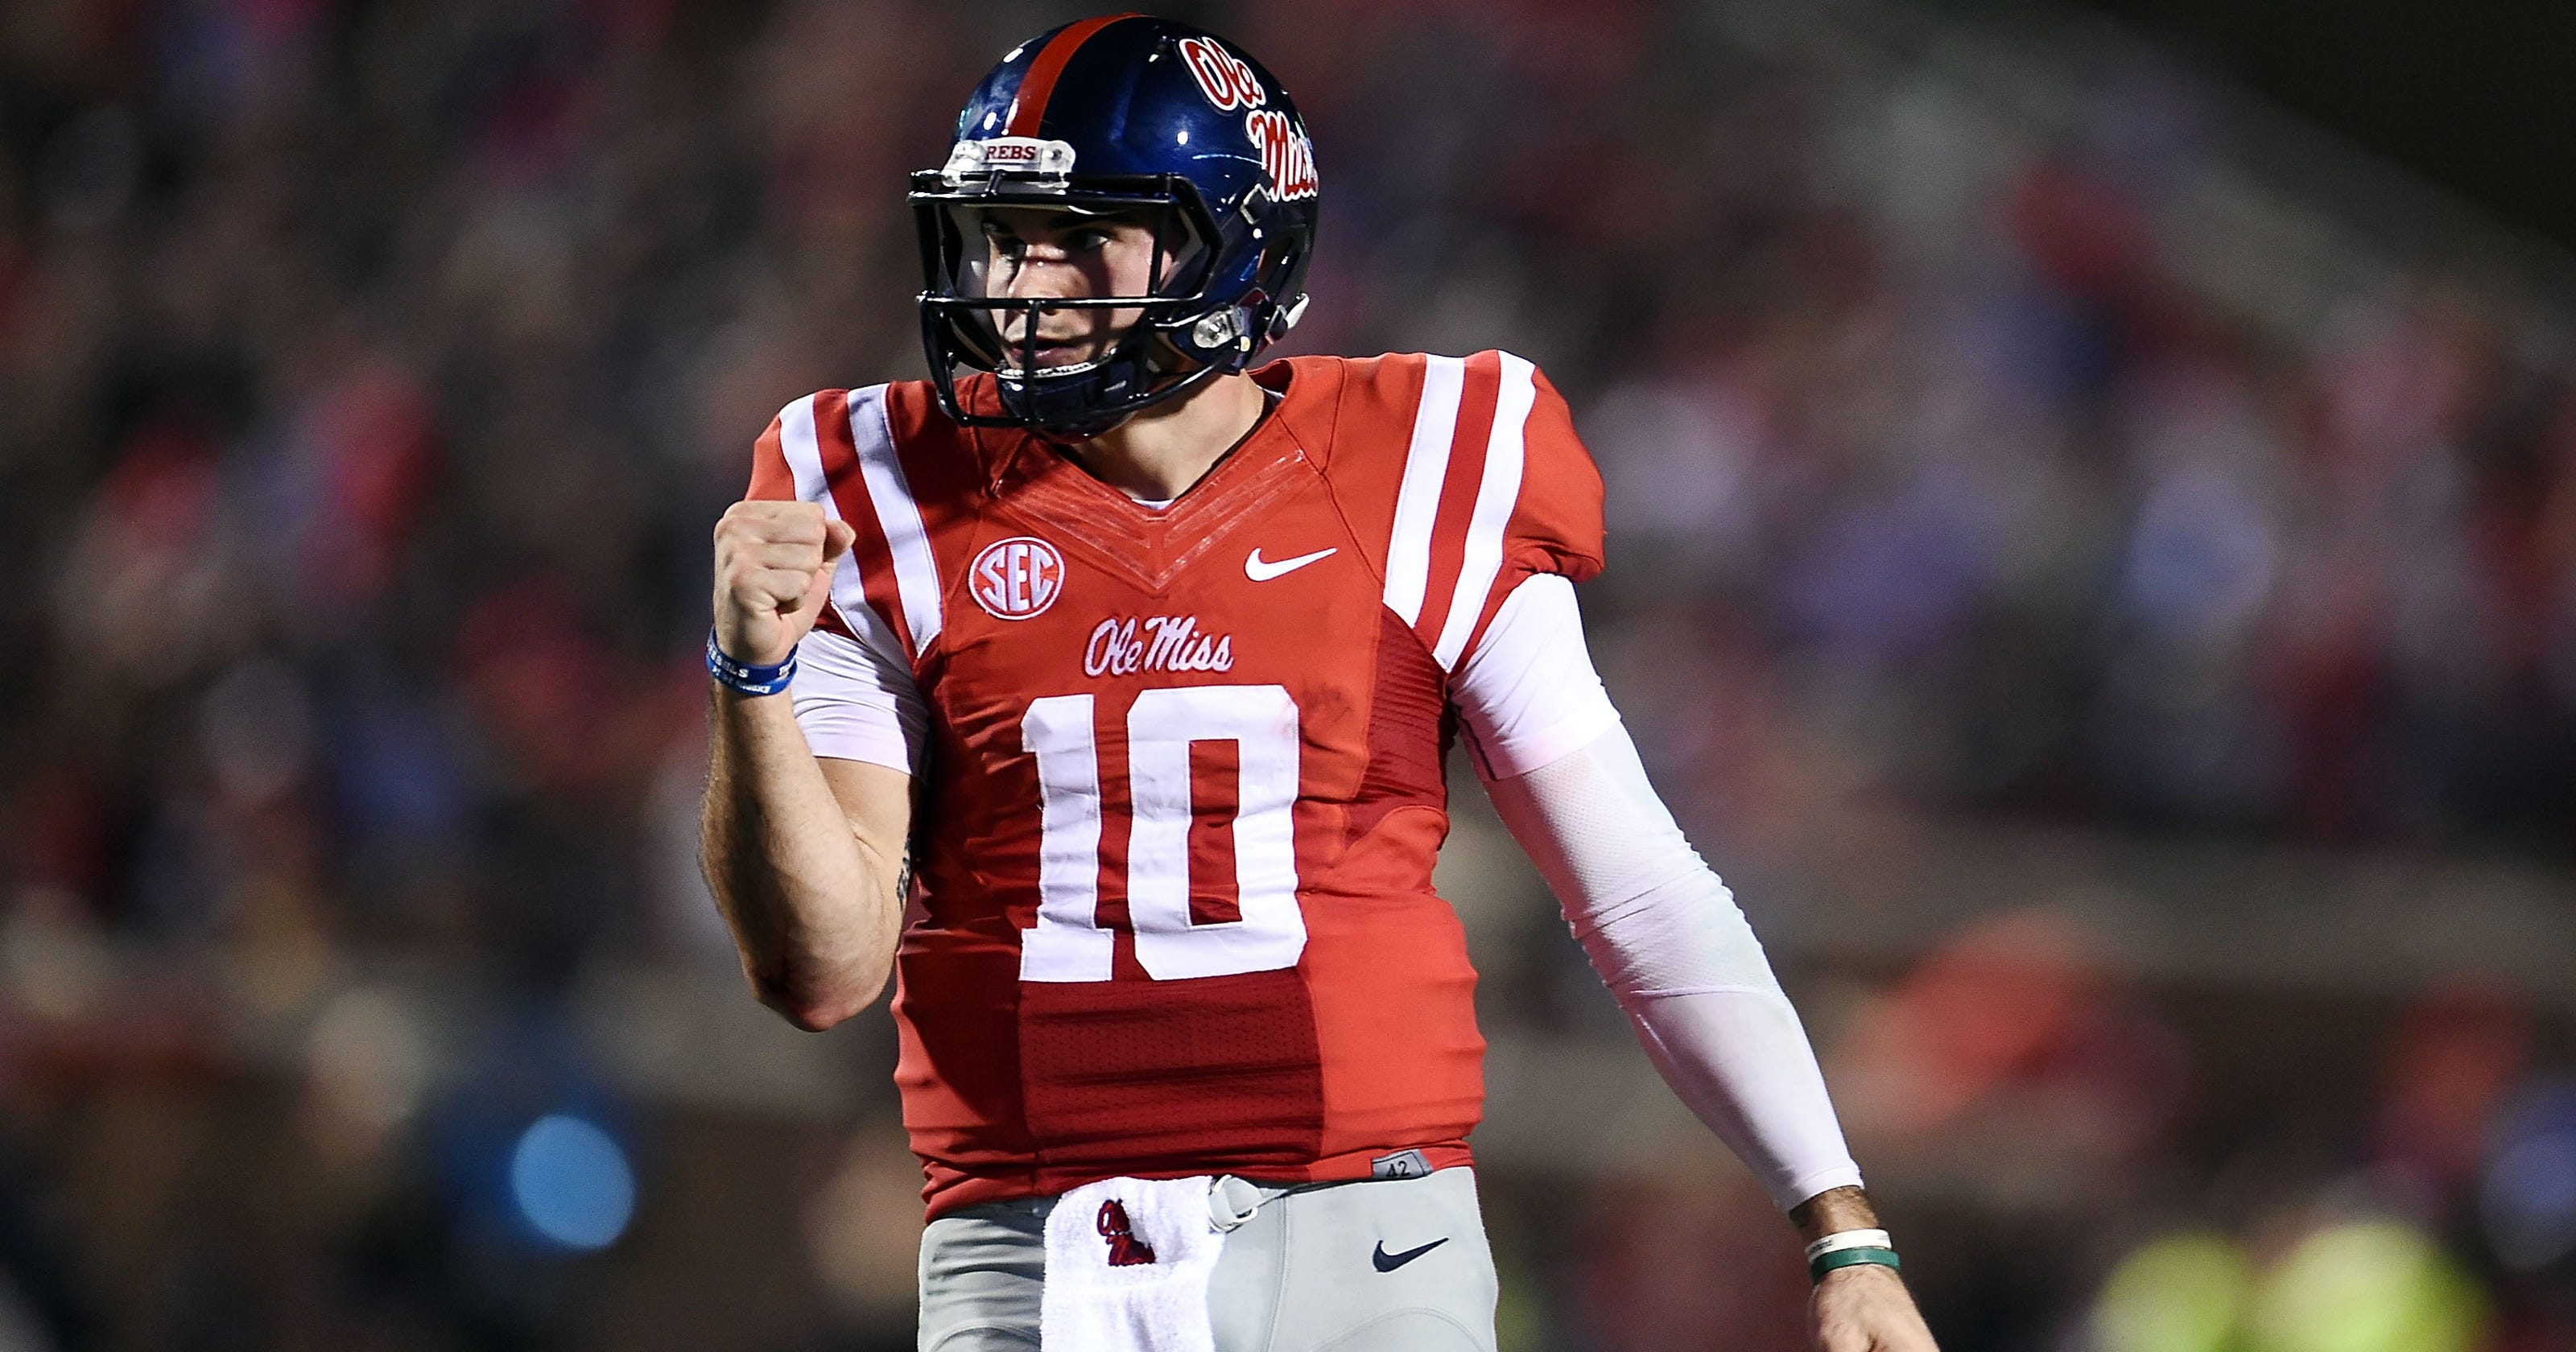 reputable site b7724 442e8 Chad Kelly taken by Denver Broncos with final pick of NFL Draft